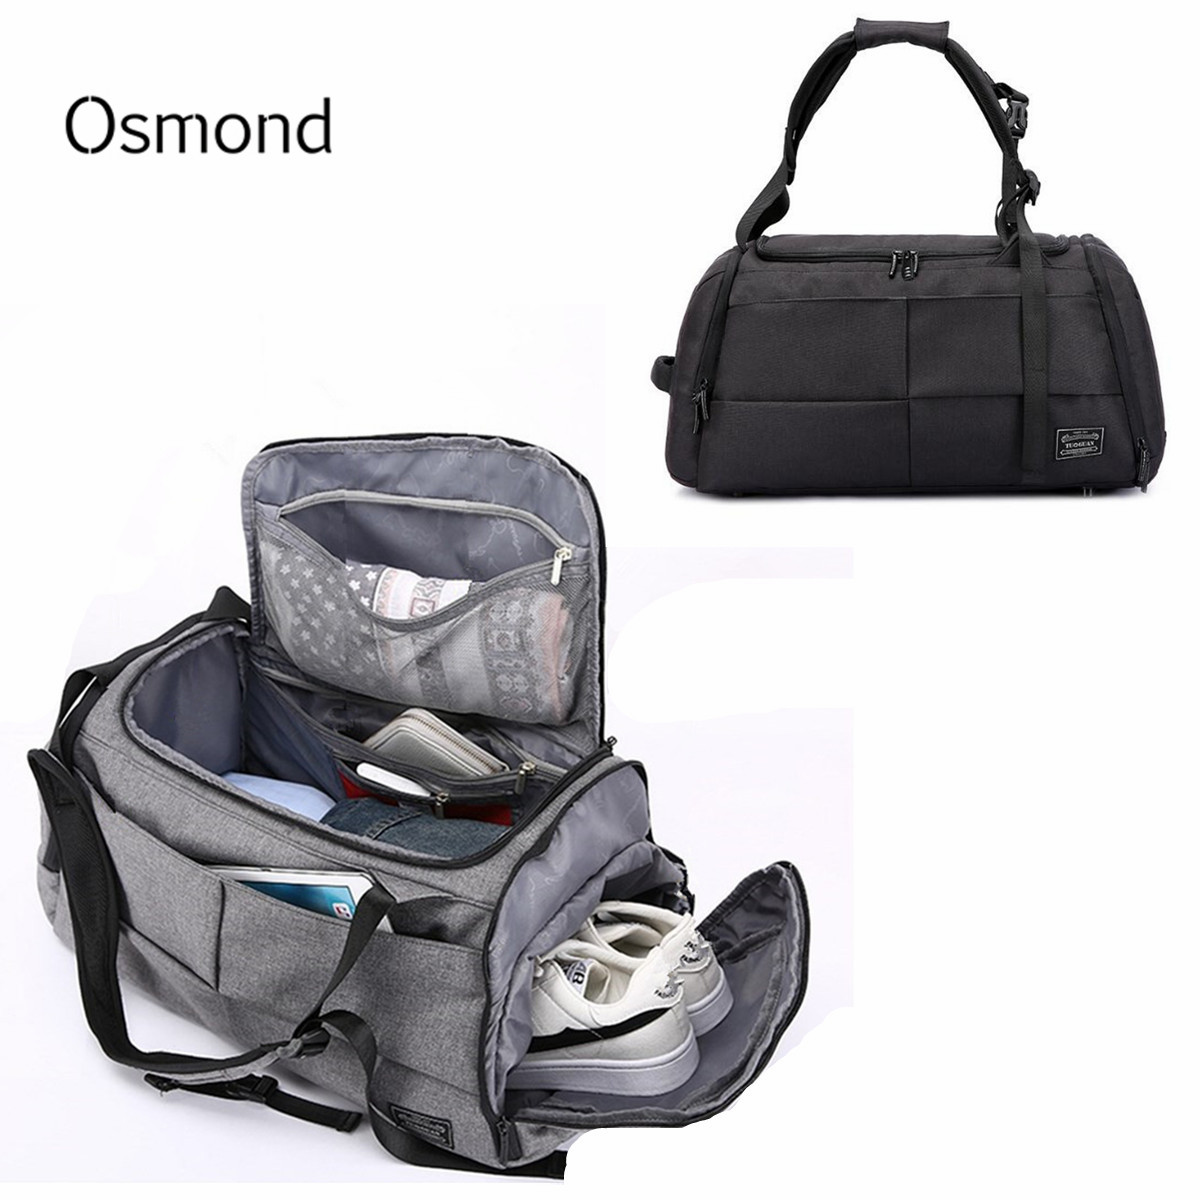 Nylon Large Capacity Travel Duffle Bag For Men Women Luggage Travel Bag Satchel Shoulder Gym Sports Handbag with Shoes Storage